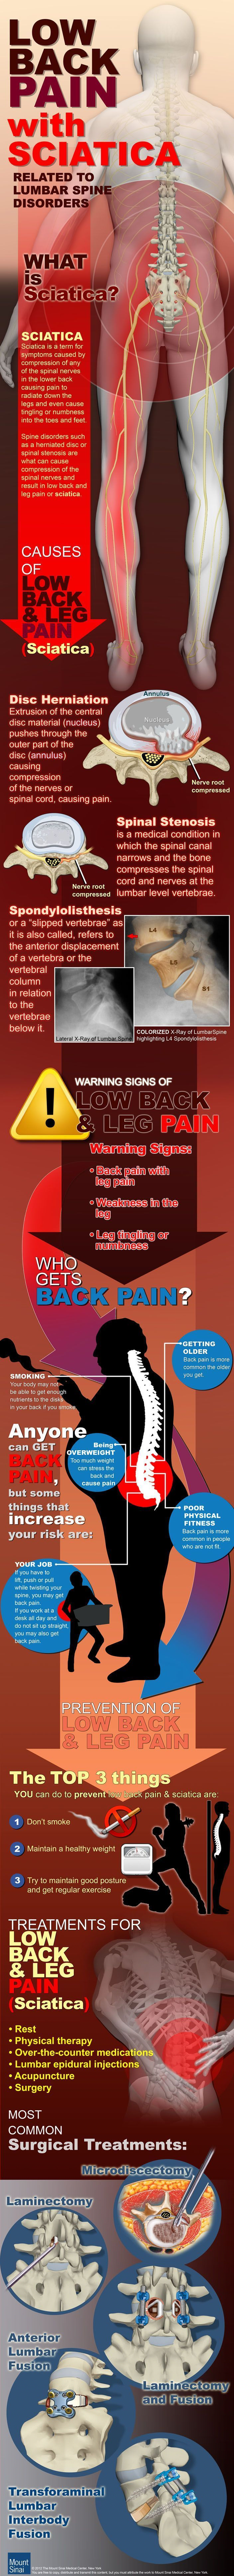 Low Back Pain with Sciatica - here's the TRUTH 60% back surgeries are UNnecessary - 95% of people with multiple back surgeries have not gone back to work 4 yrs later Back surgeries are so bad there is a medical term- FBSS failed back surgery syndrome -17%